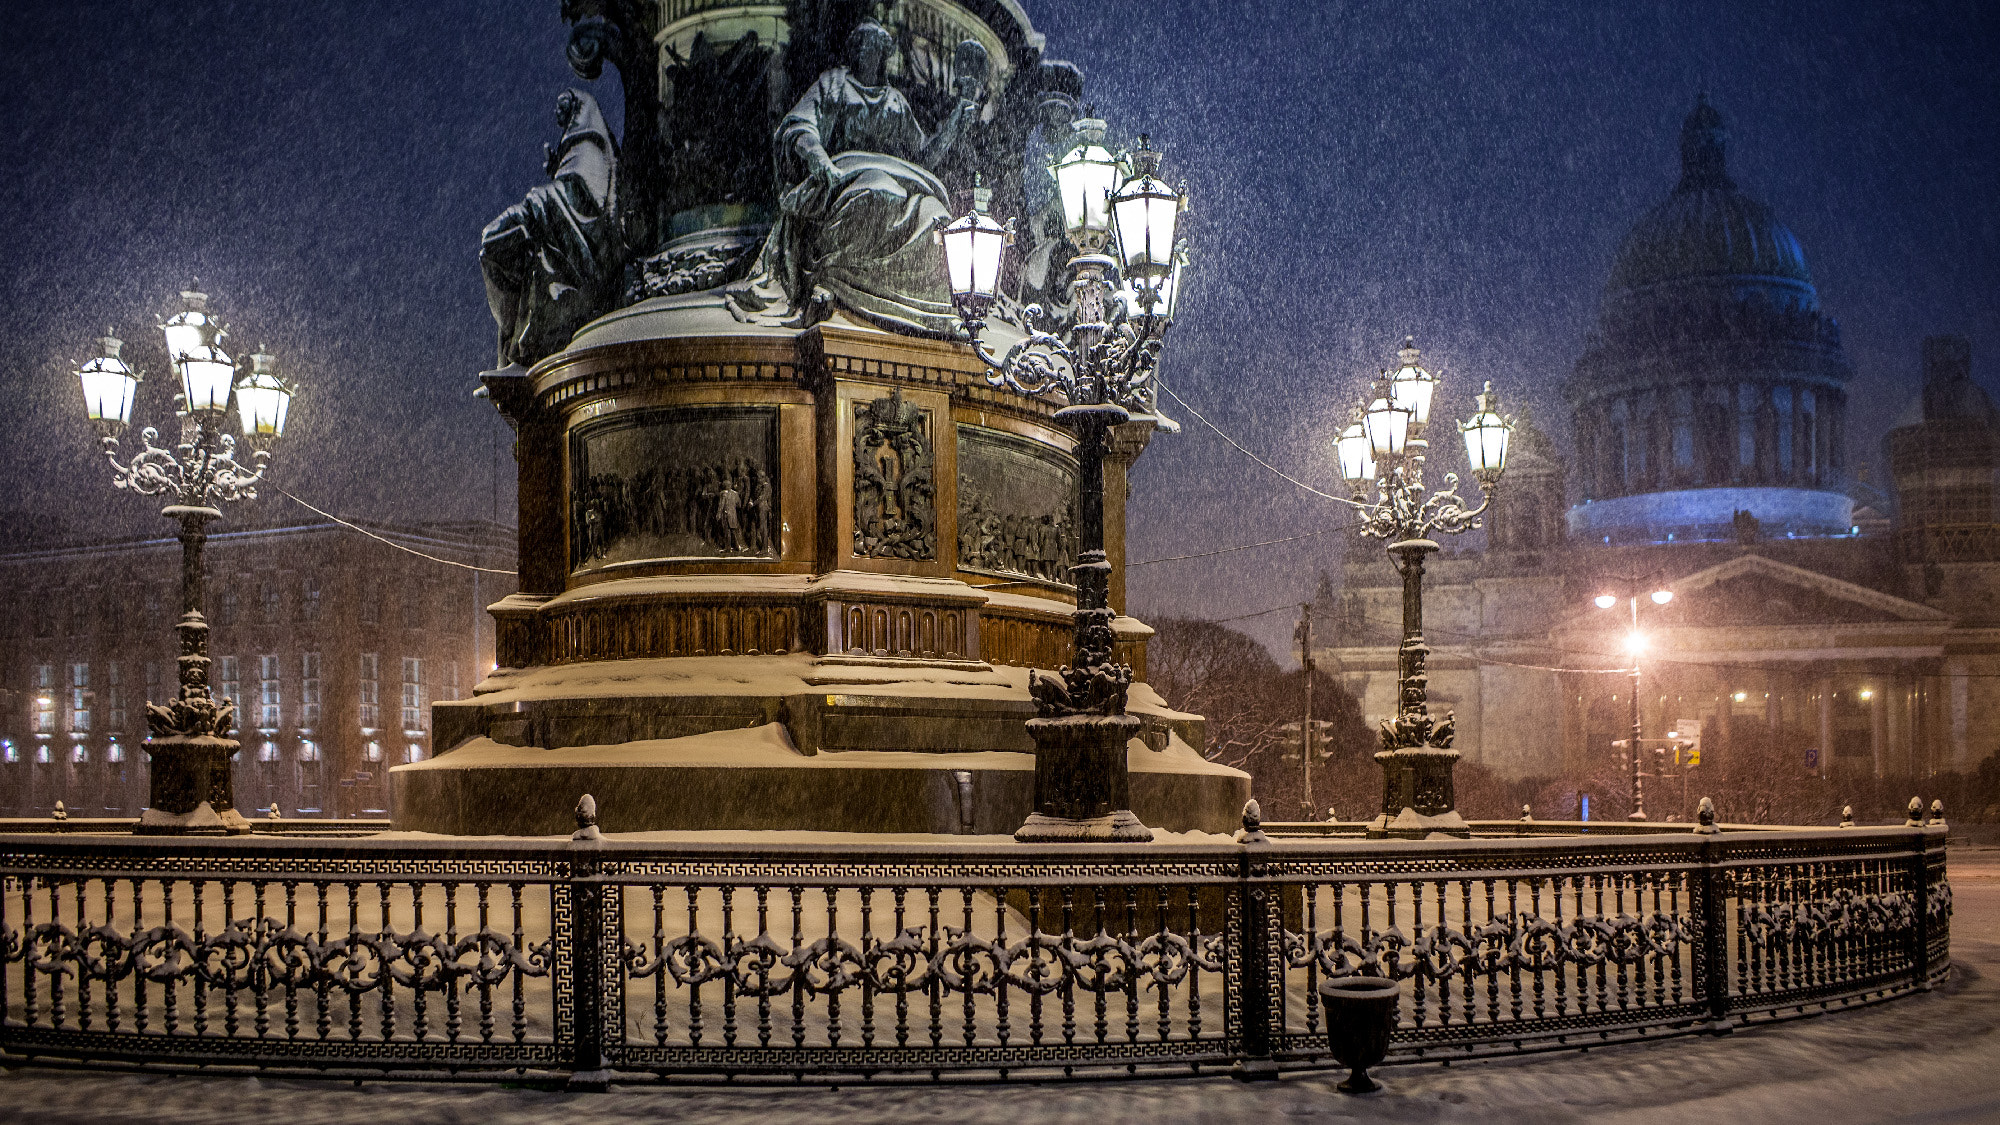 Photograph Isaacs square, Saint-Petersburg by Sergey Bogomyako on 500px